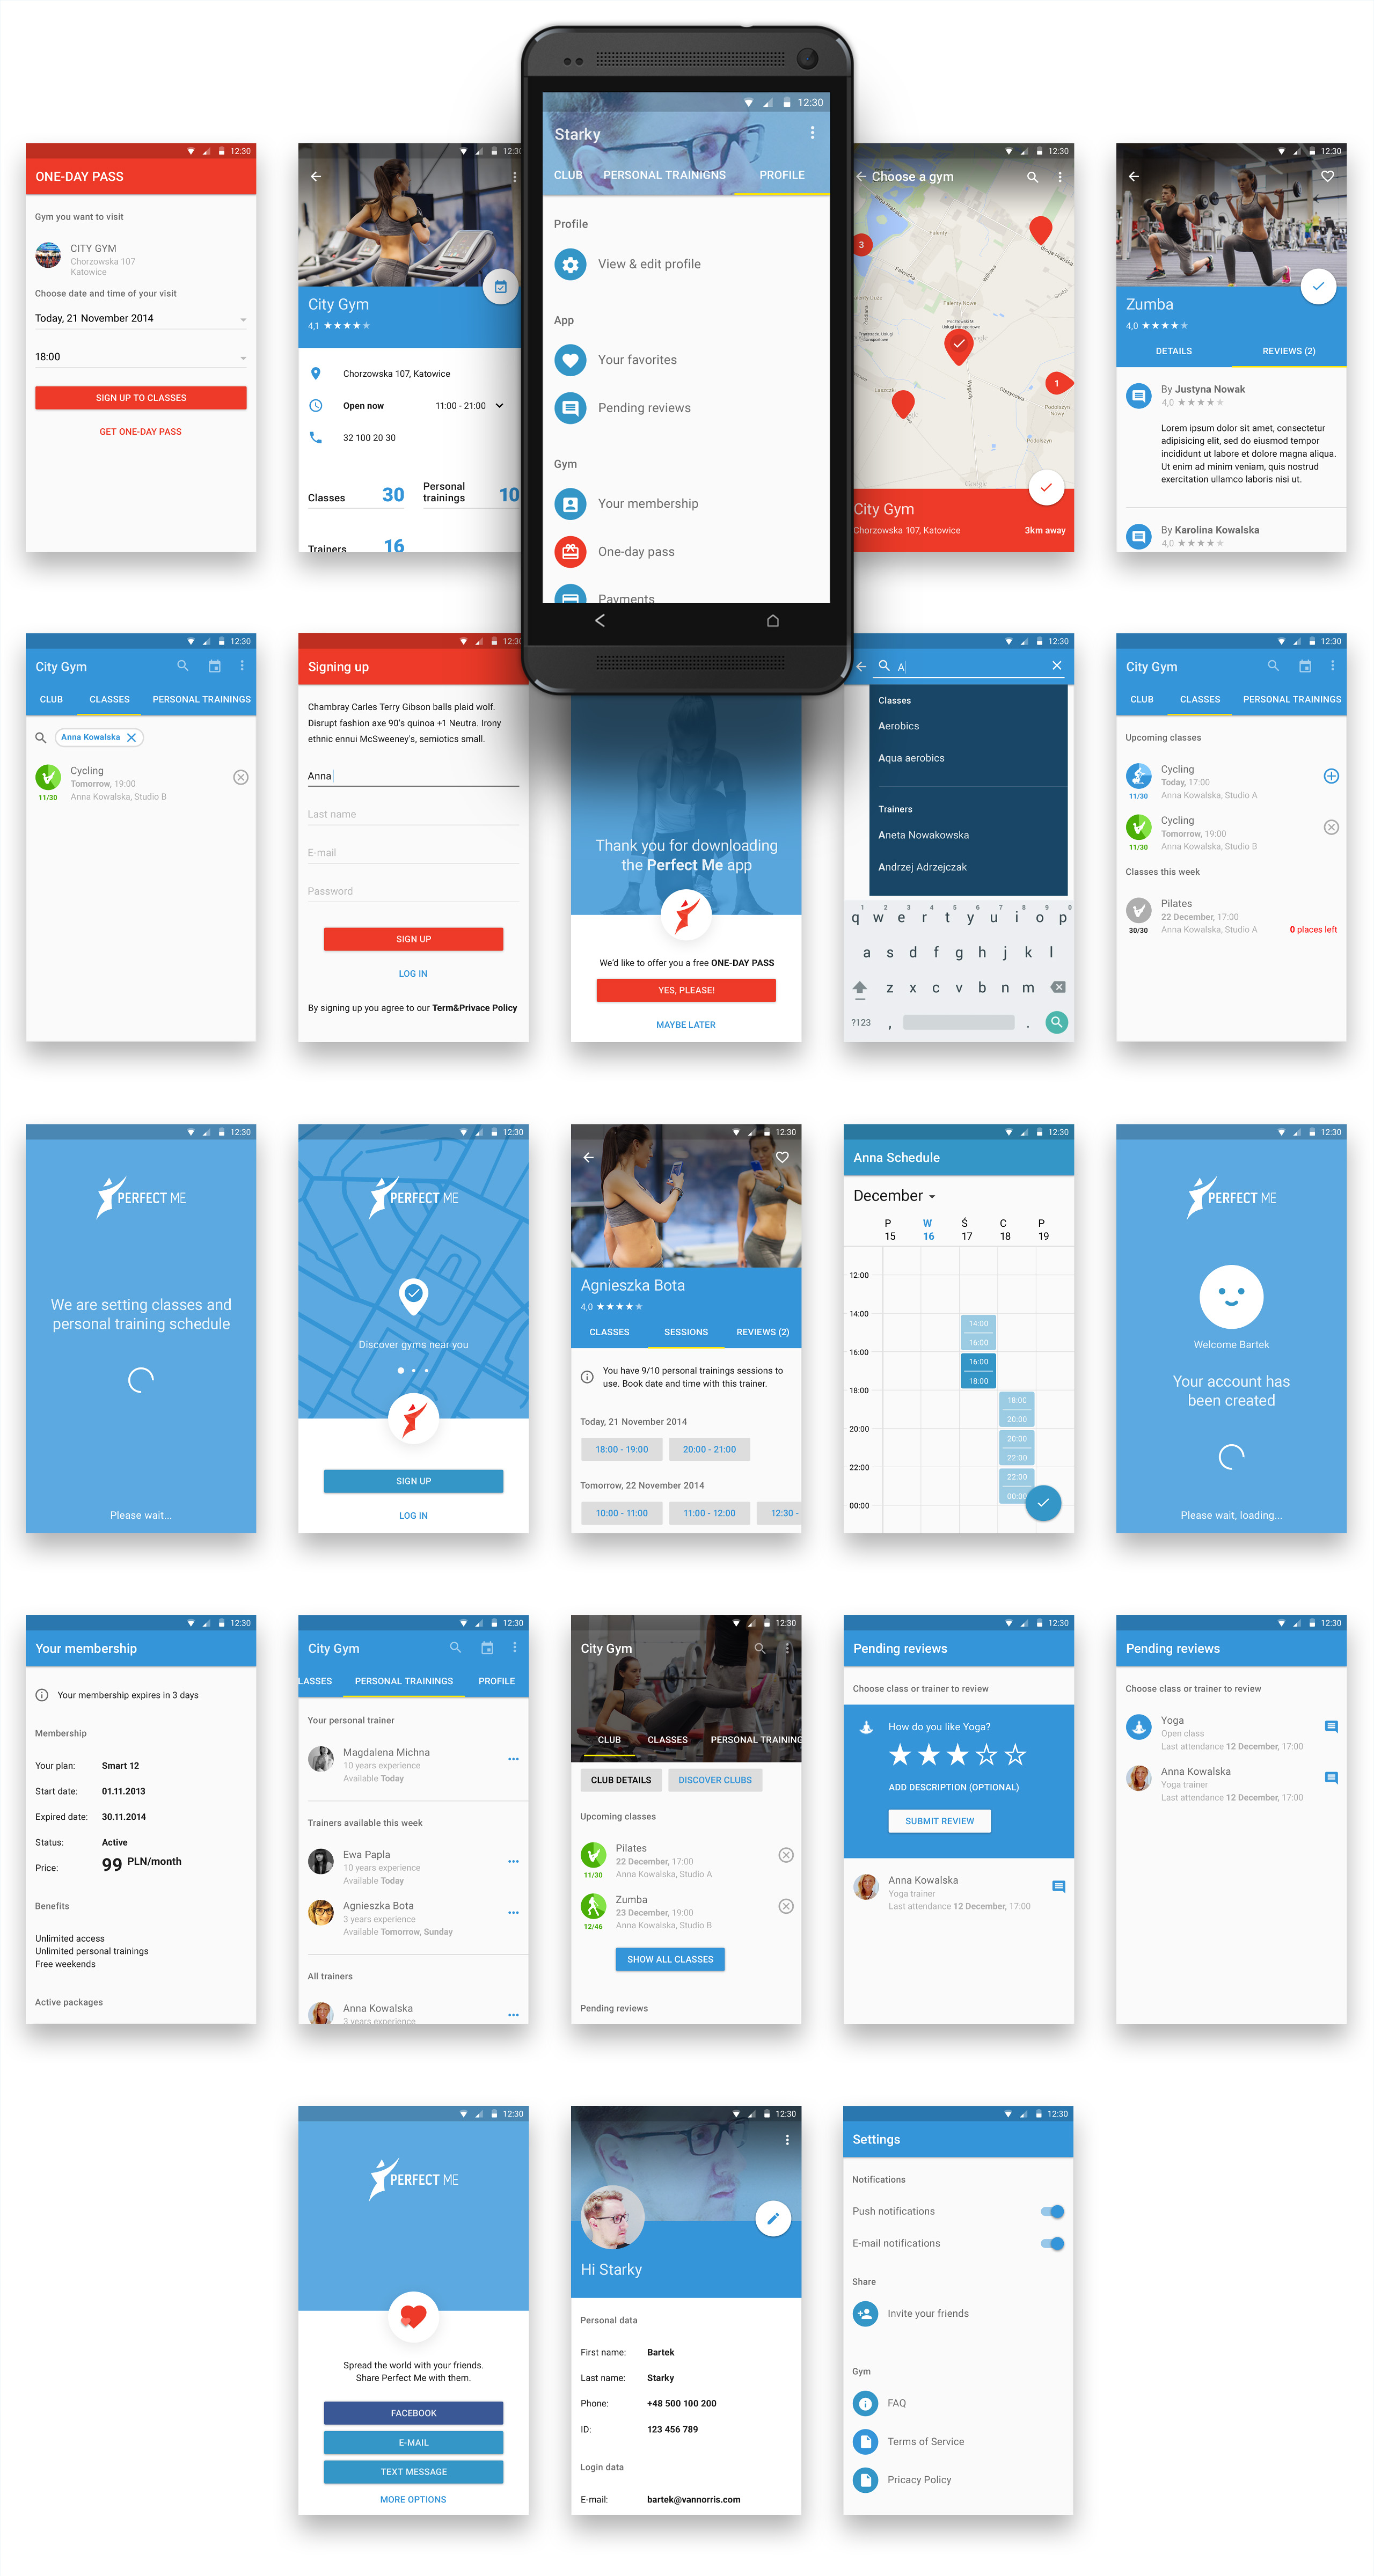 android_design_no-phone